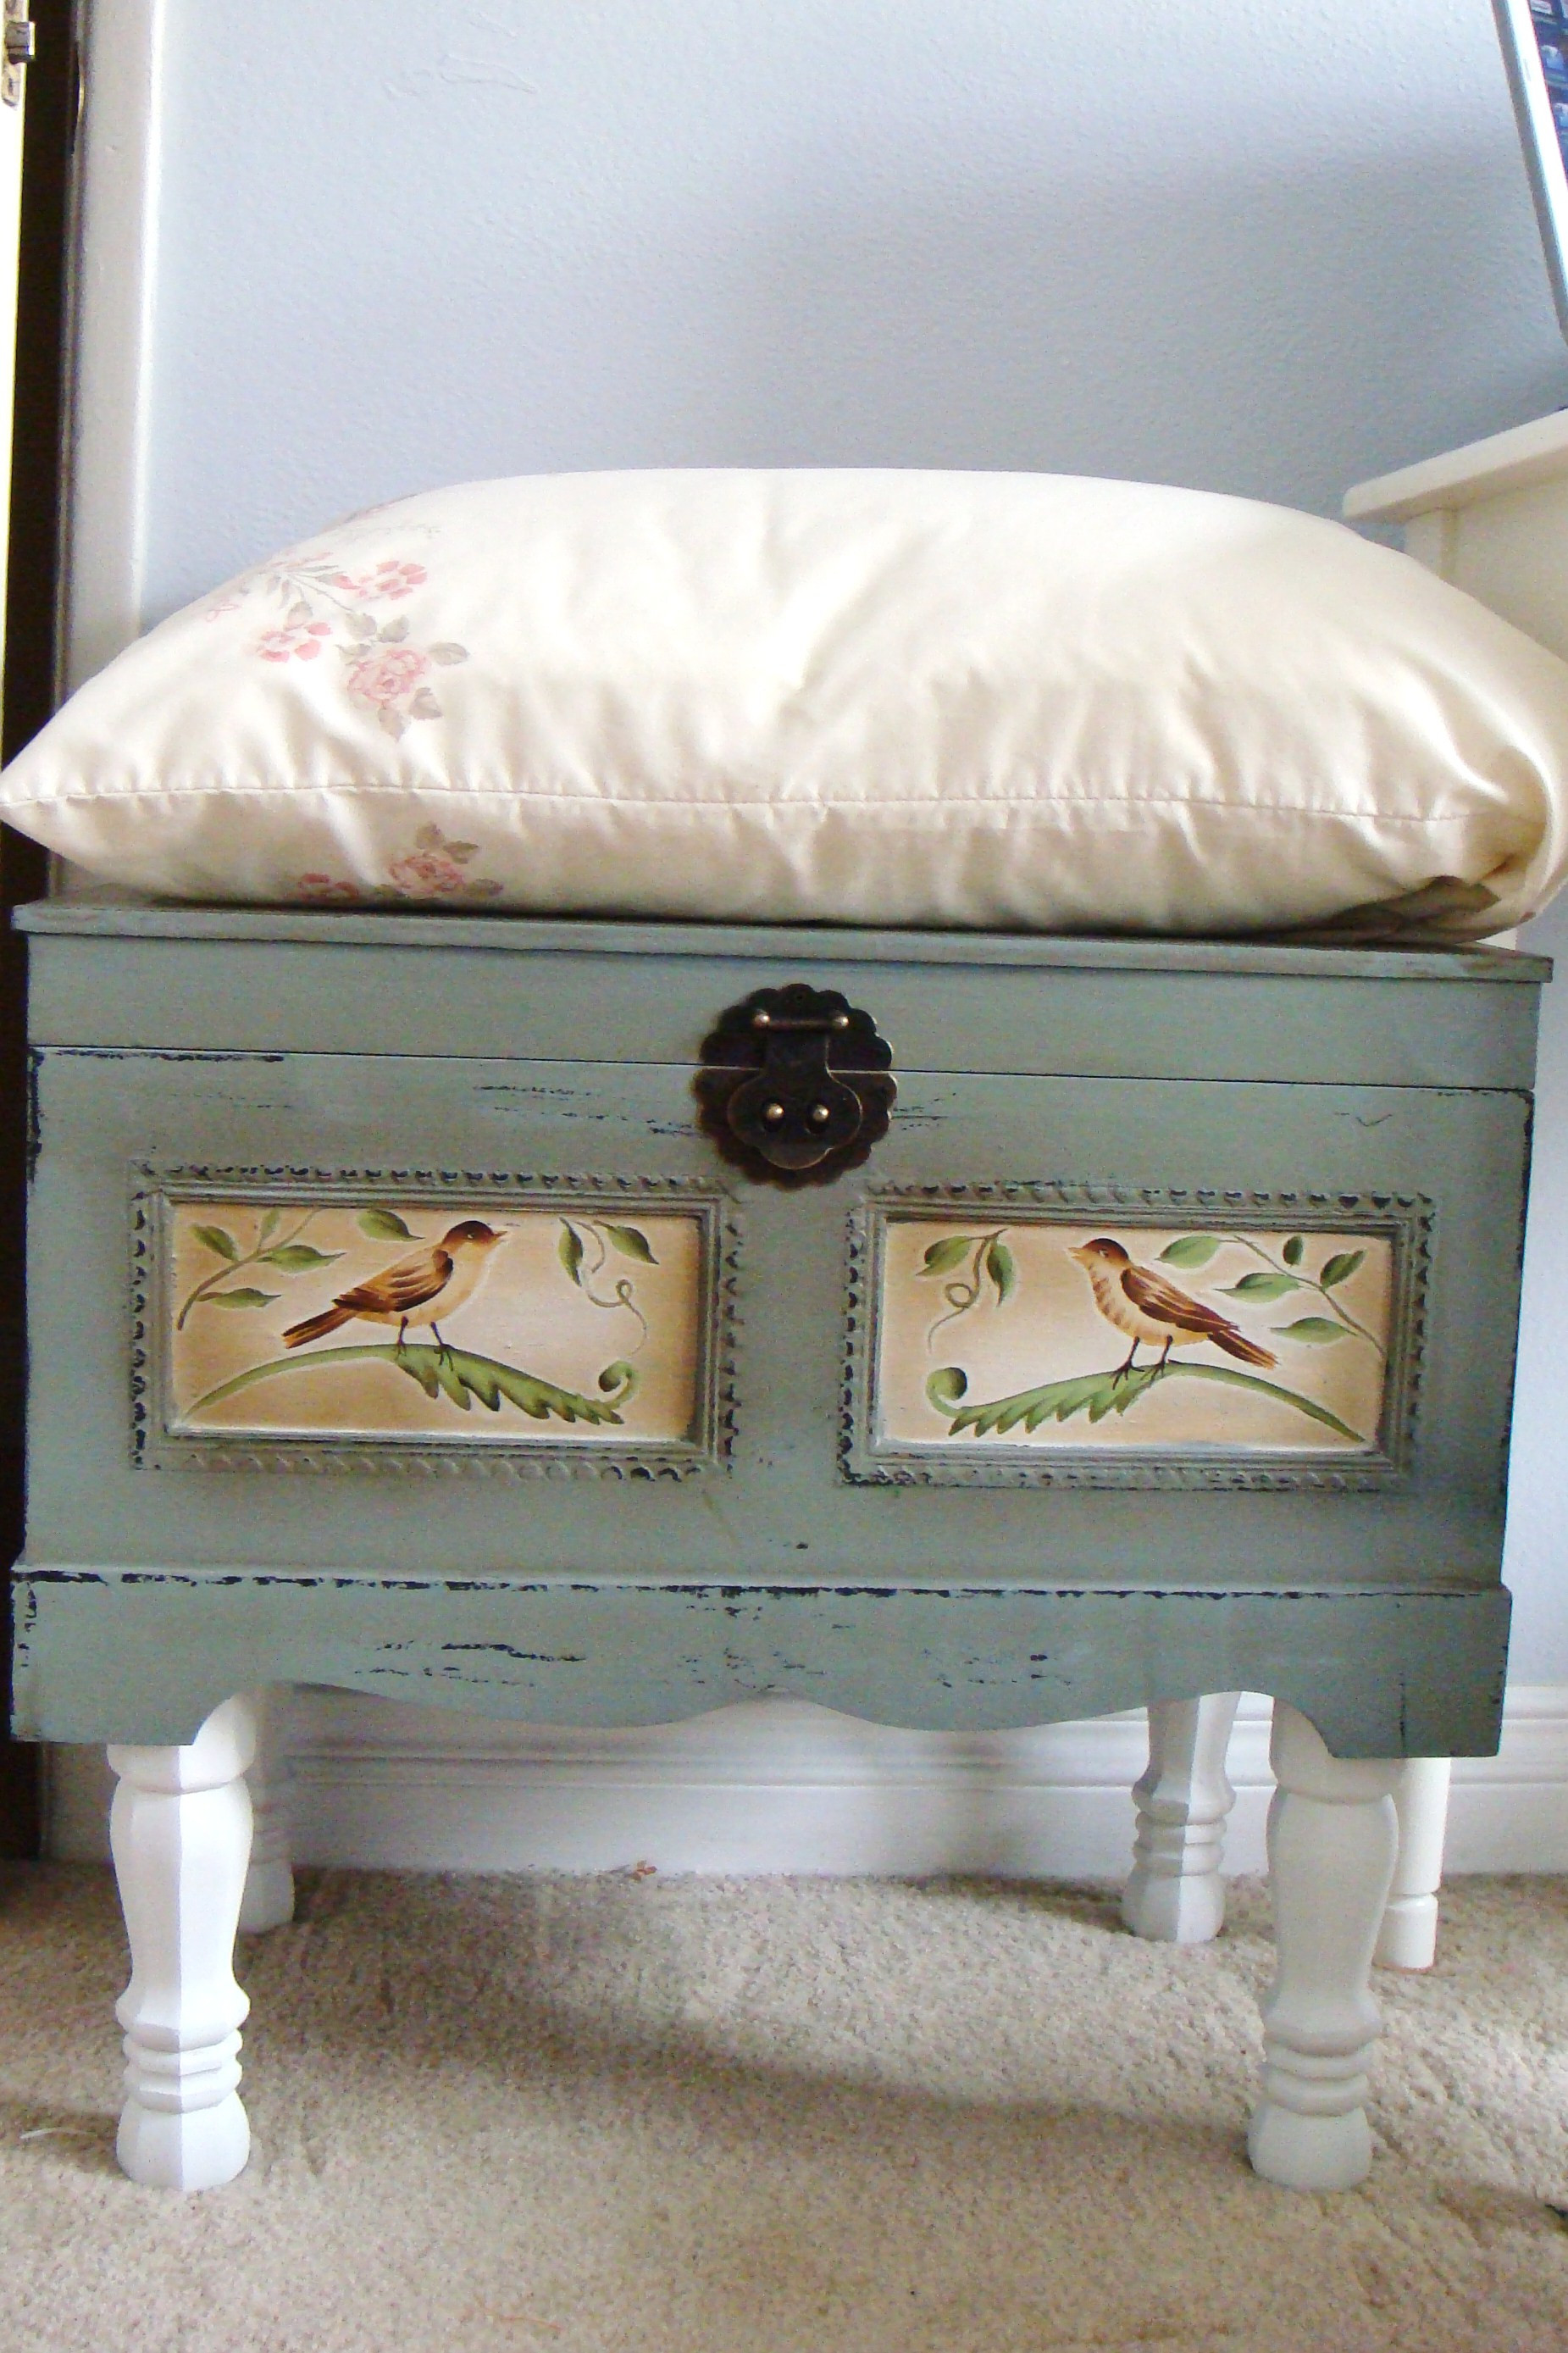 Best ideas about DIY Storage Bench . Save or Pin Simple DIY Storage Bench Now.